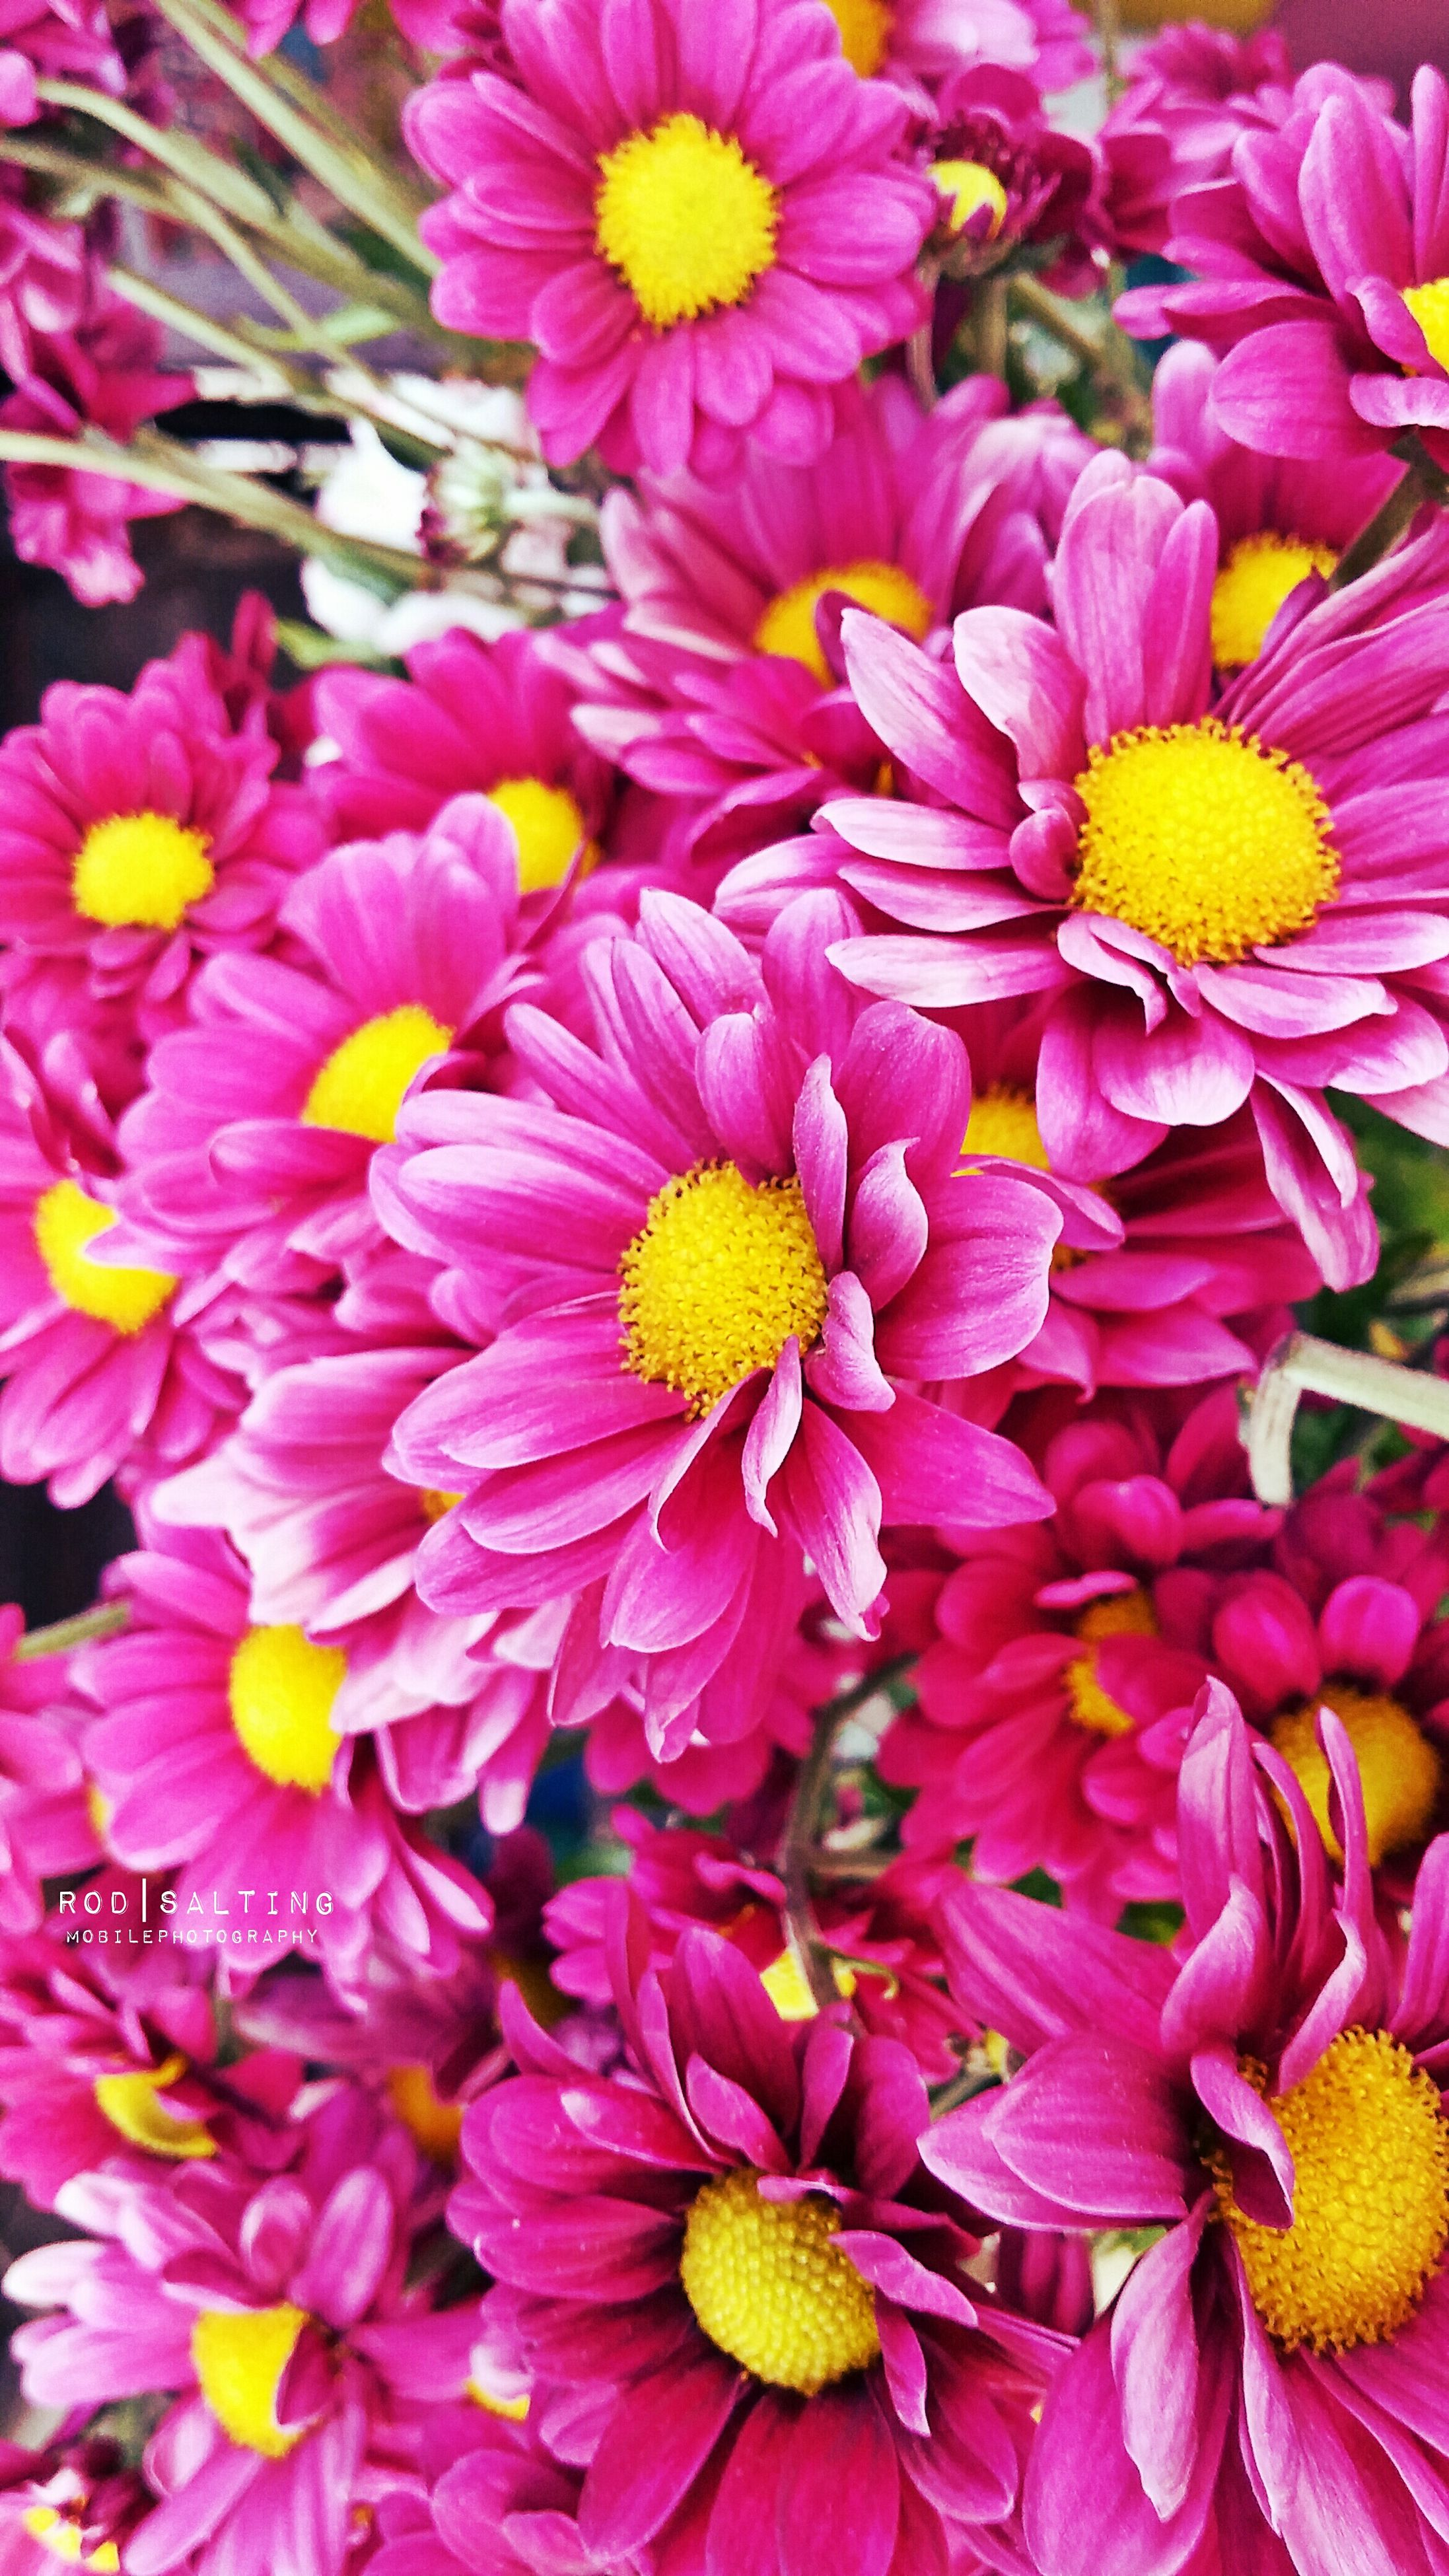 flower, freshness, petal, fragility, flower head, beauty in nature, pink color, growth, yellow, blooming, full frame, nature, close-up, backgrounds, pollen, abundance, plant, in bloom, high angle view, blossom